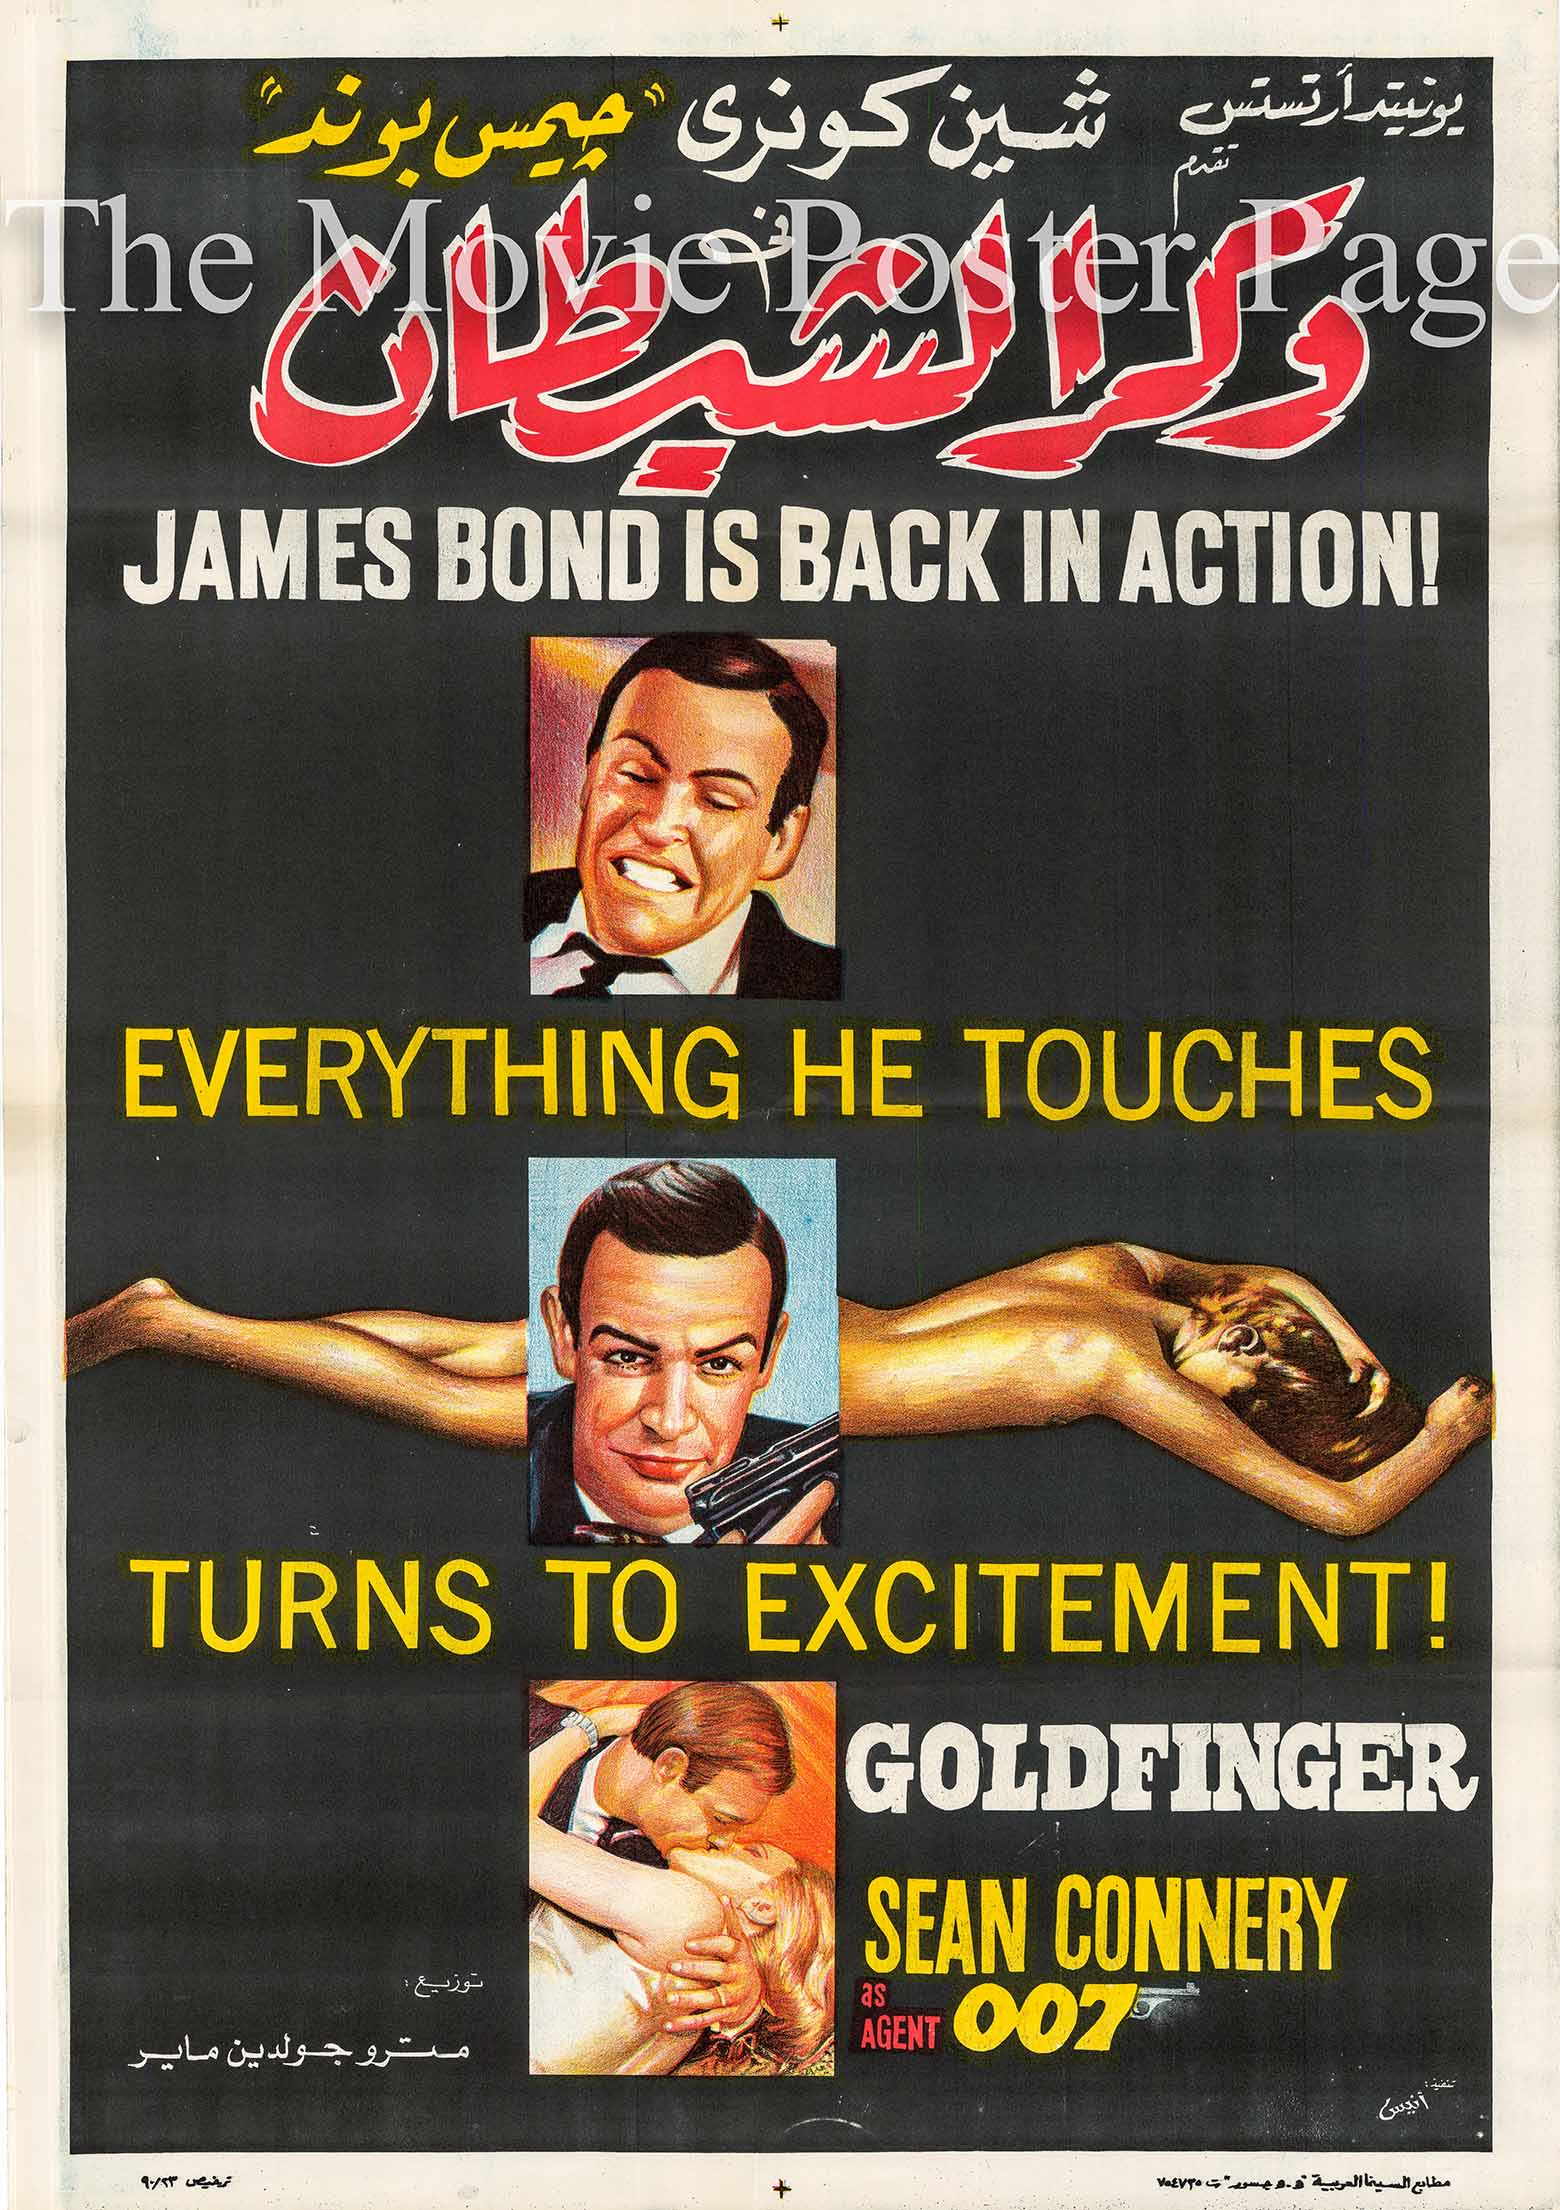 Pictured is an Egyptian promotional poster for a 1990 rerelease of the 1964 Guy Hamilton film Goldfinger starring Sean Connery as James Bond and Gert Frobe as Goldfinger.